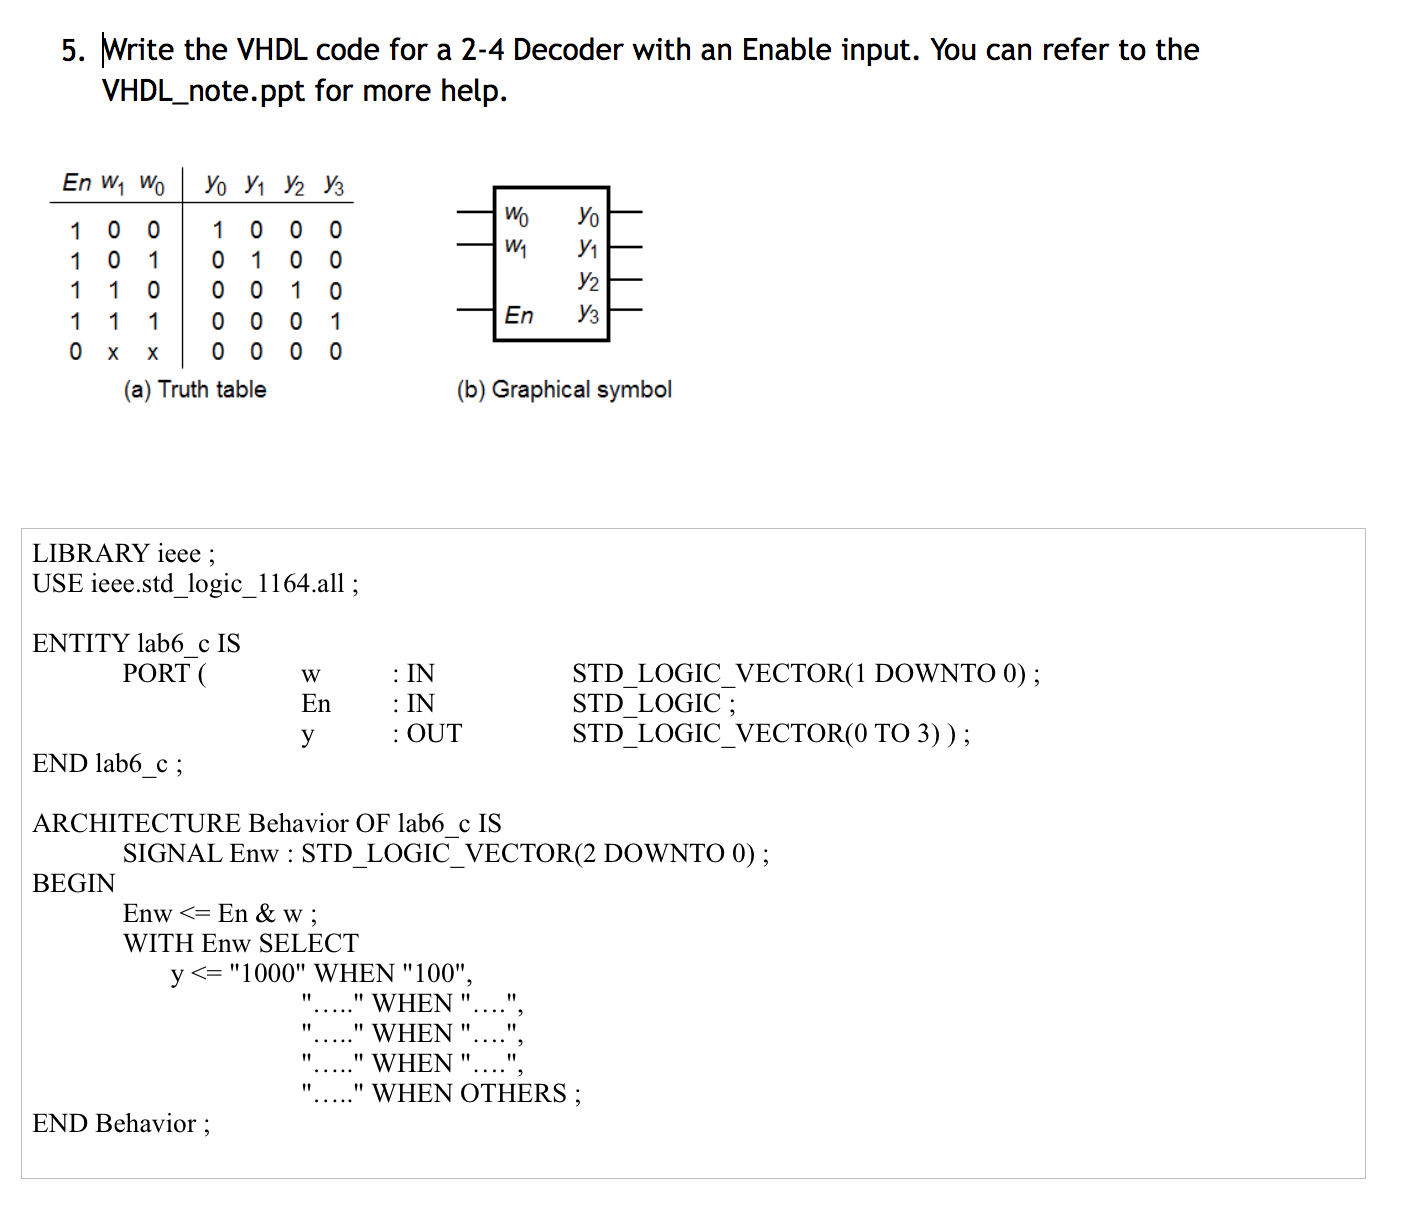 Solved: Write The VHDL Code For A 2-4 Decoder With An Enab